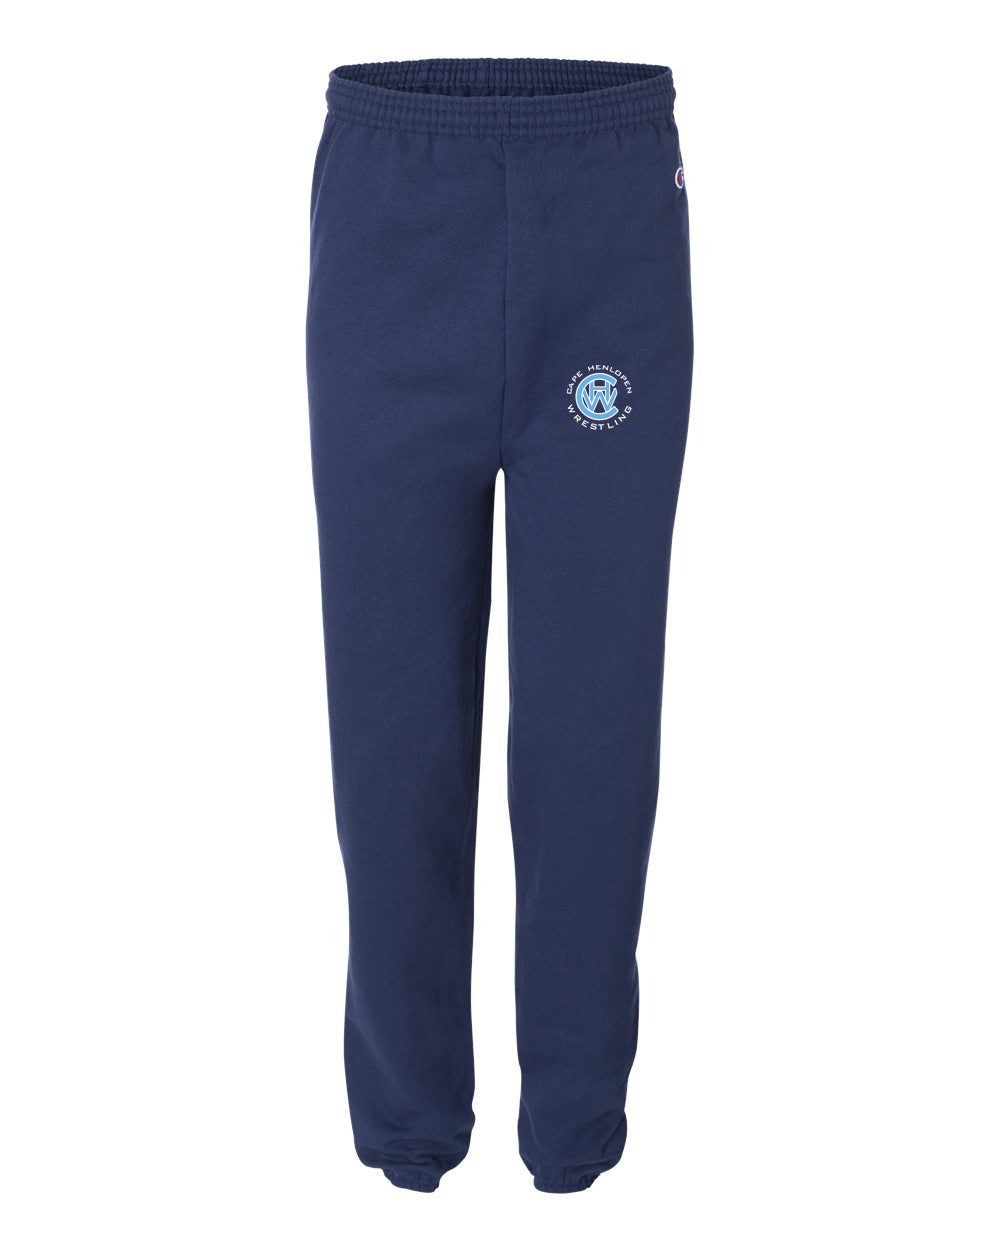 Champion - Double Dry Eco Sweatpants (Cuffed Bottom)